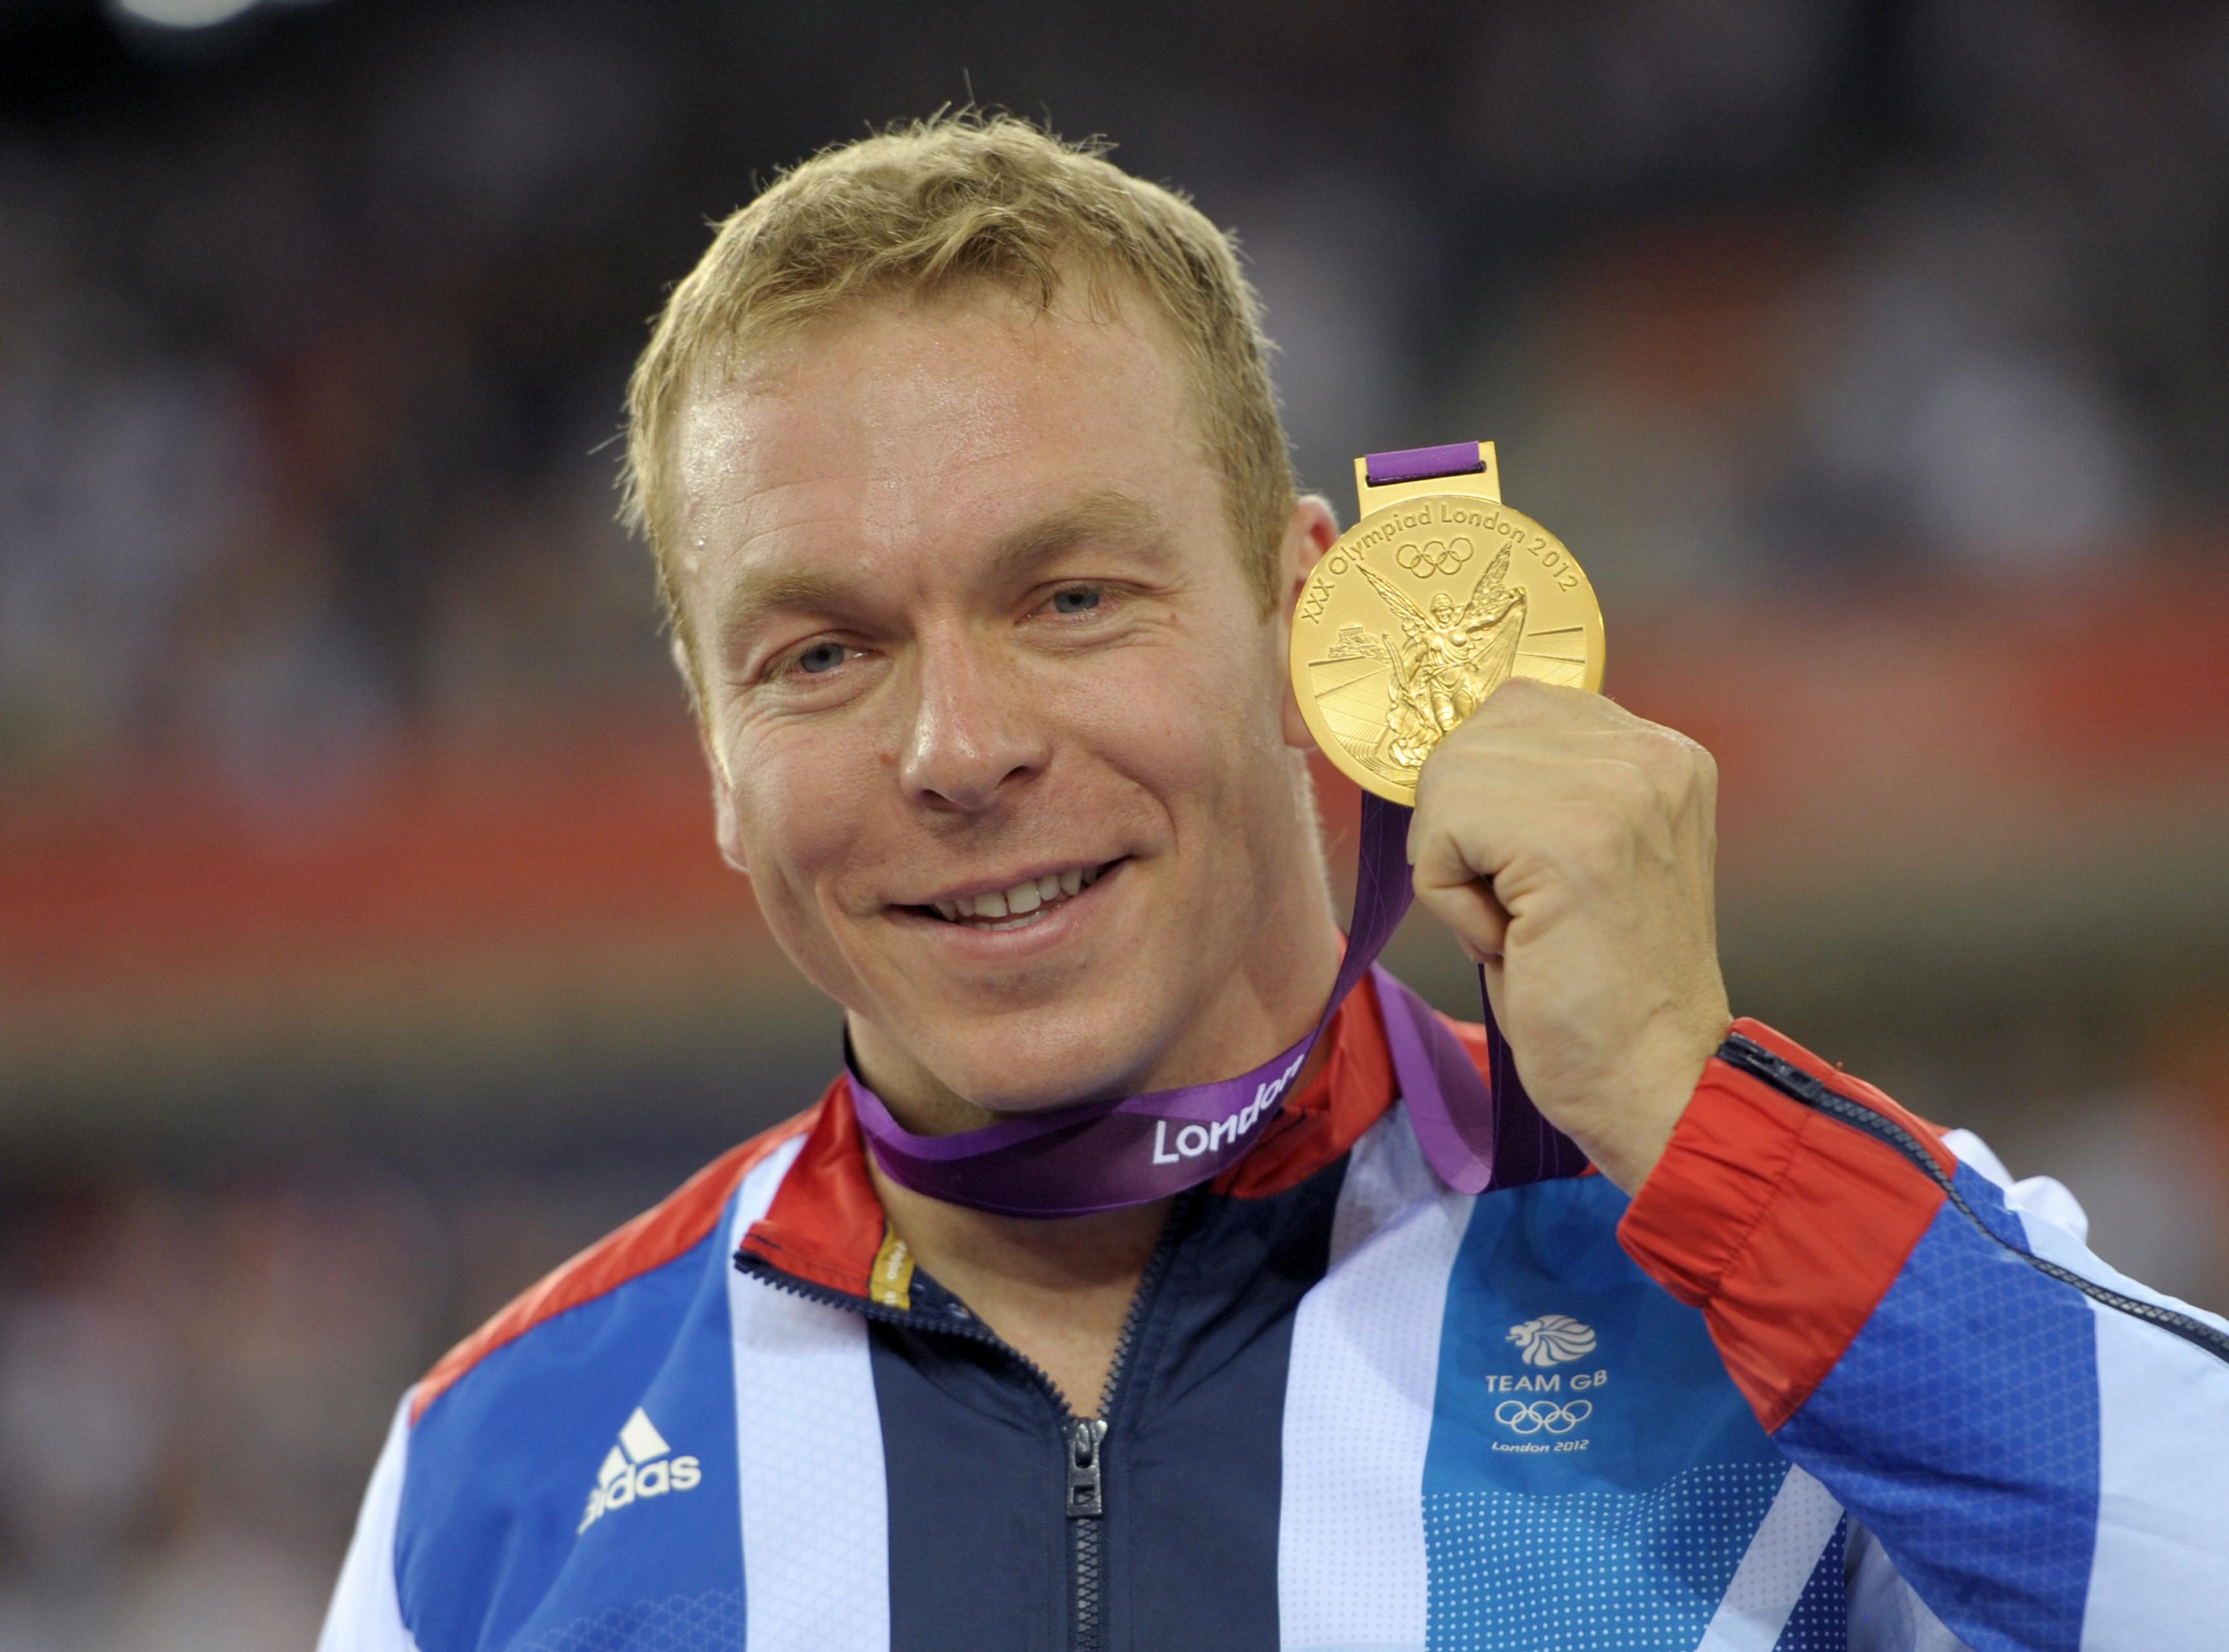 Chris Hoy's legacy is intact - but Jason Kenny could overtake him with more Olympic medals